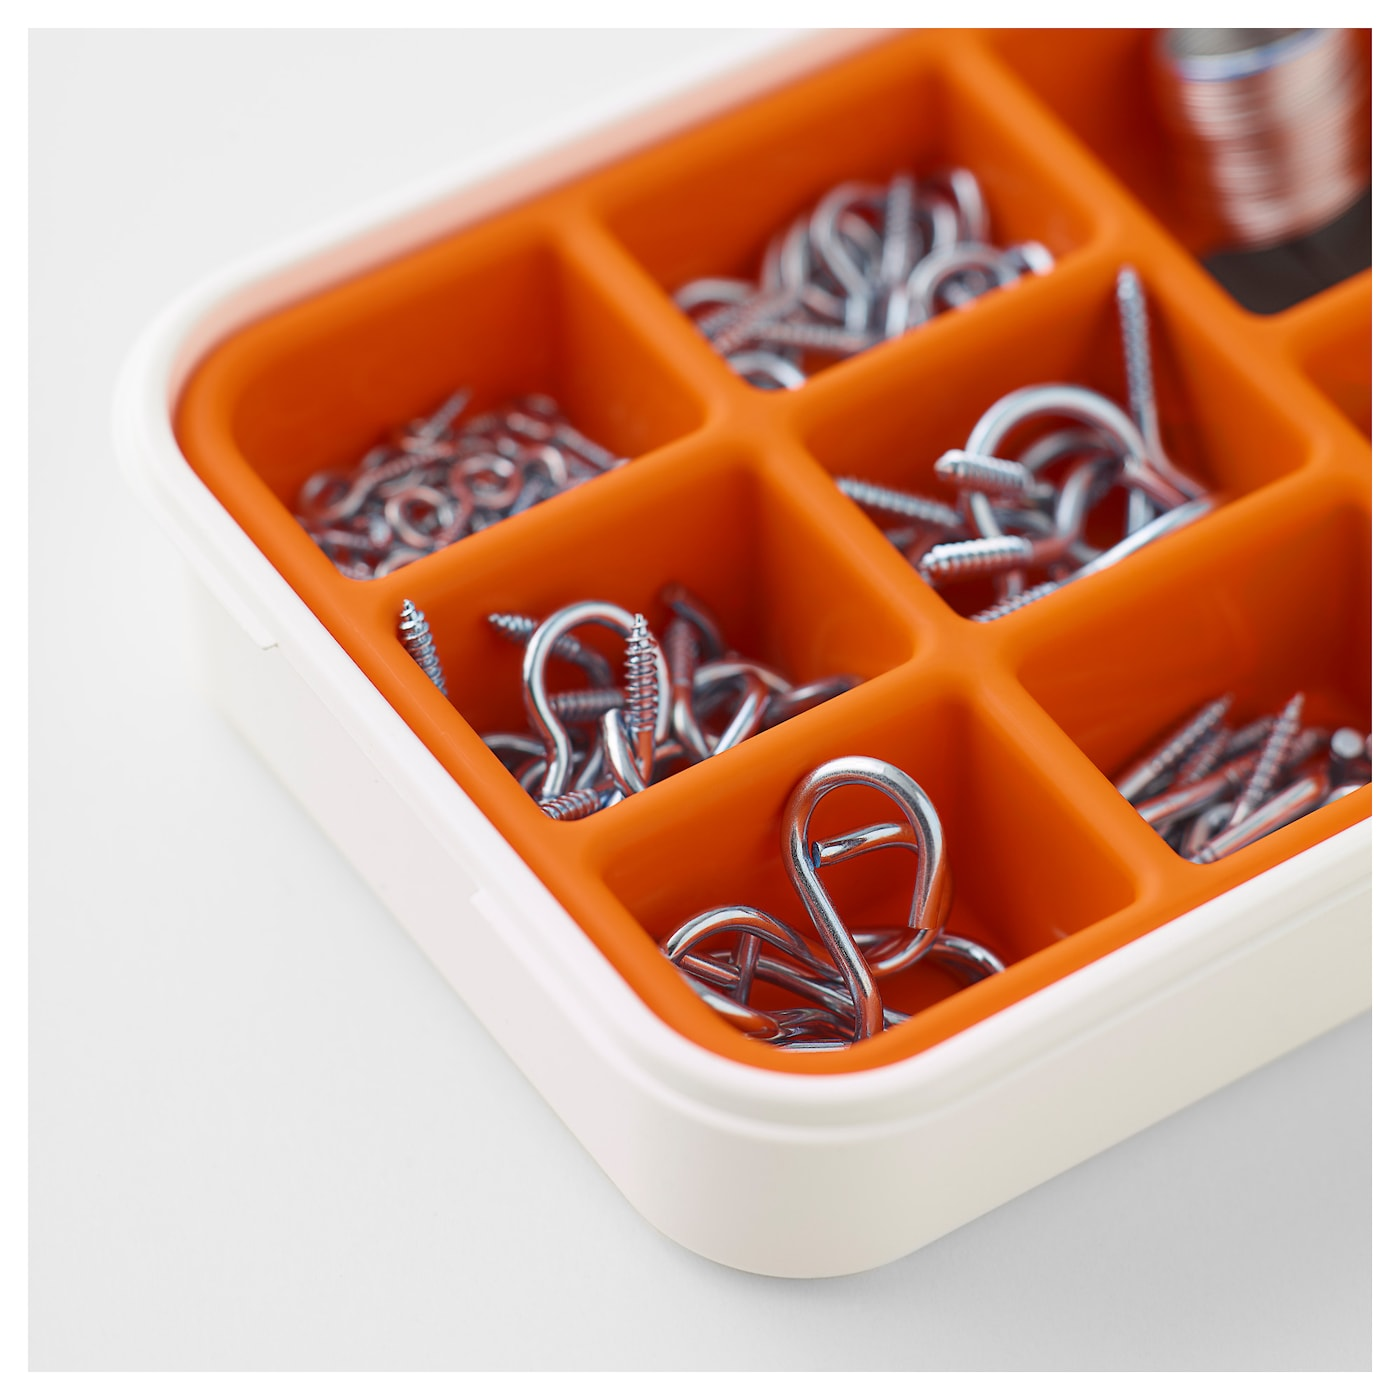 IKEA FIXA 102-piece hooks and hanging set Can be stacked with other boxes in the FIXA series.